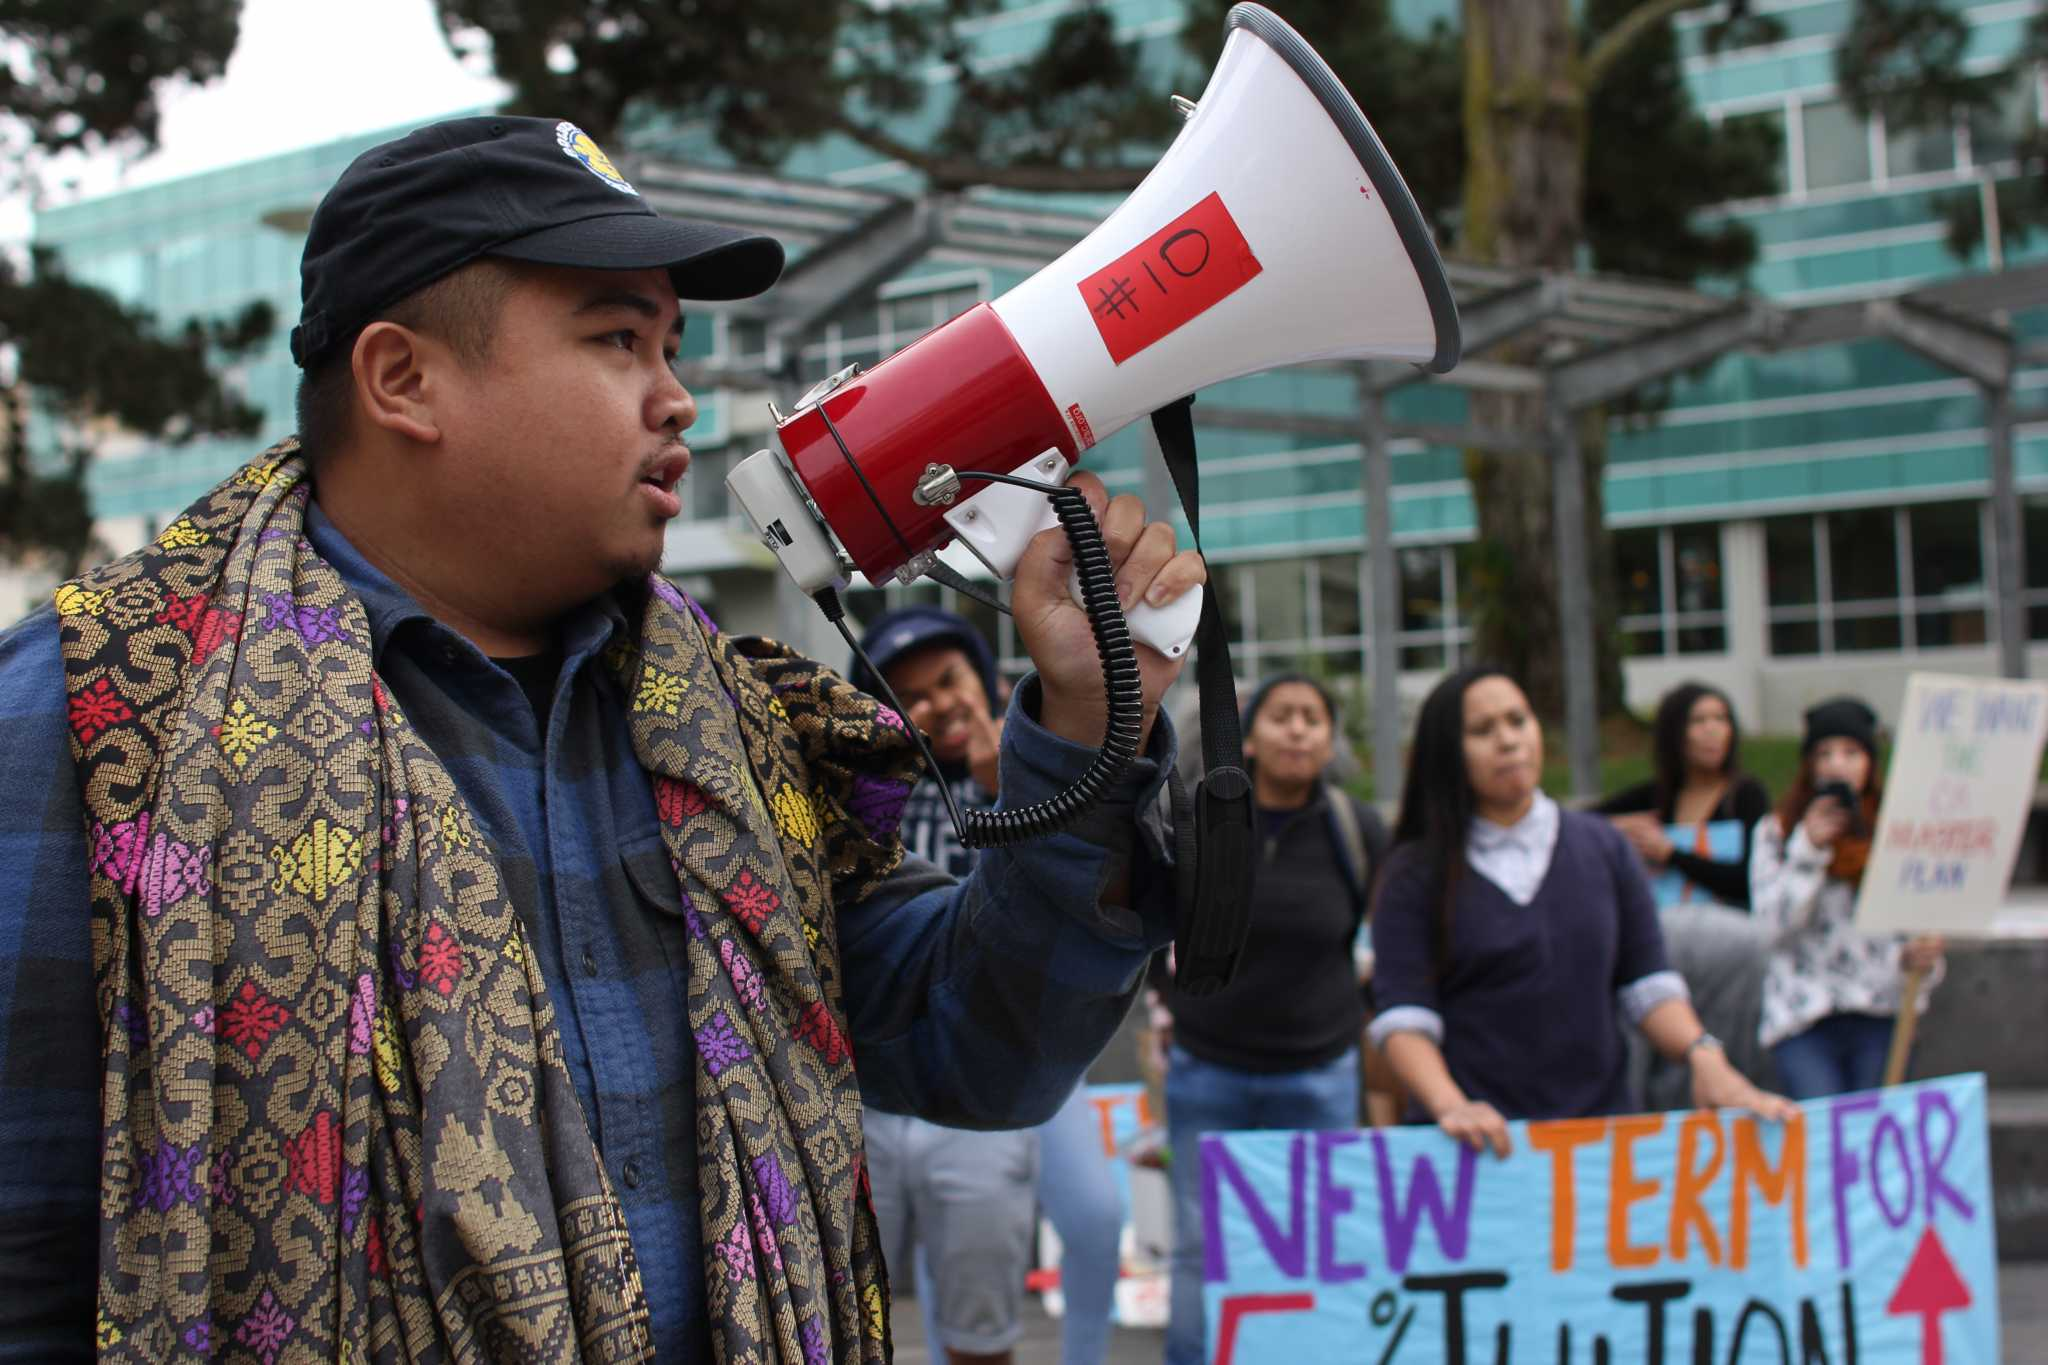 SF State political science major Pat Racello speaks to the students through a megaphone about the 5 percent tuition increase in Malcolm X Plaza on Tuesday, Nov. 15, 2016.